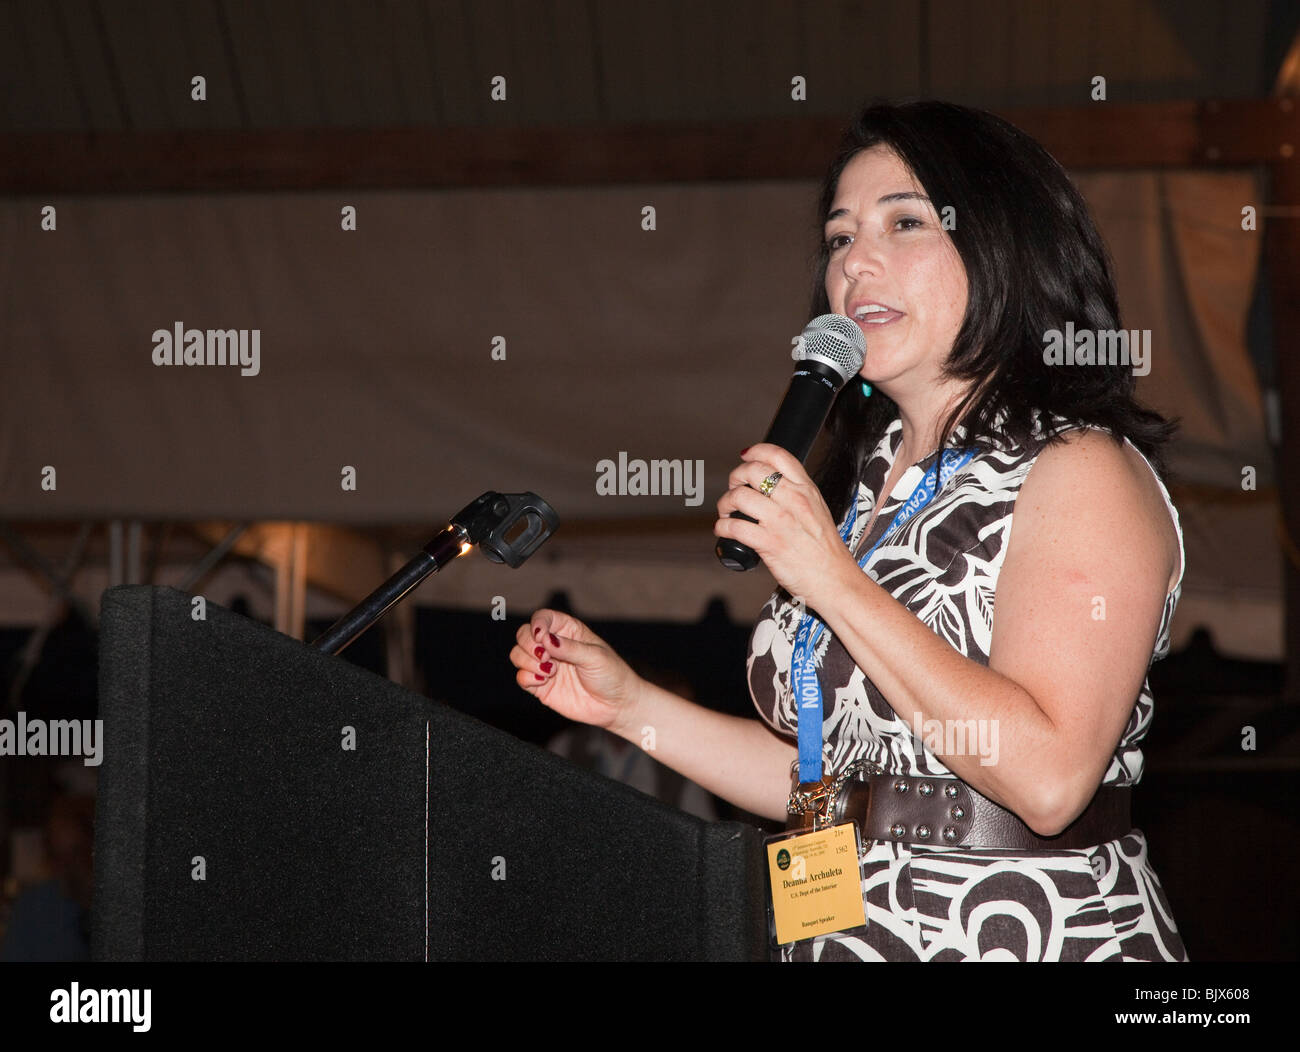 Deanna Archuleta of the Department of the Interior addressing an audience at a dinner Texas USA - Stock Image